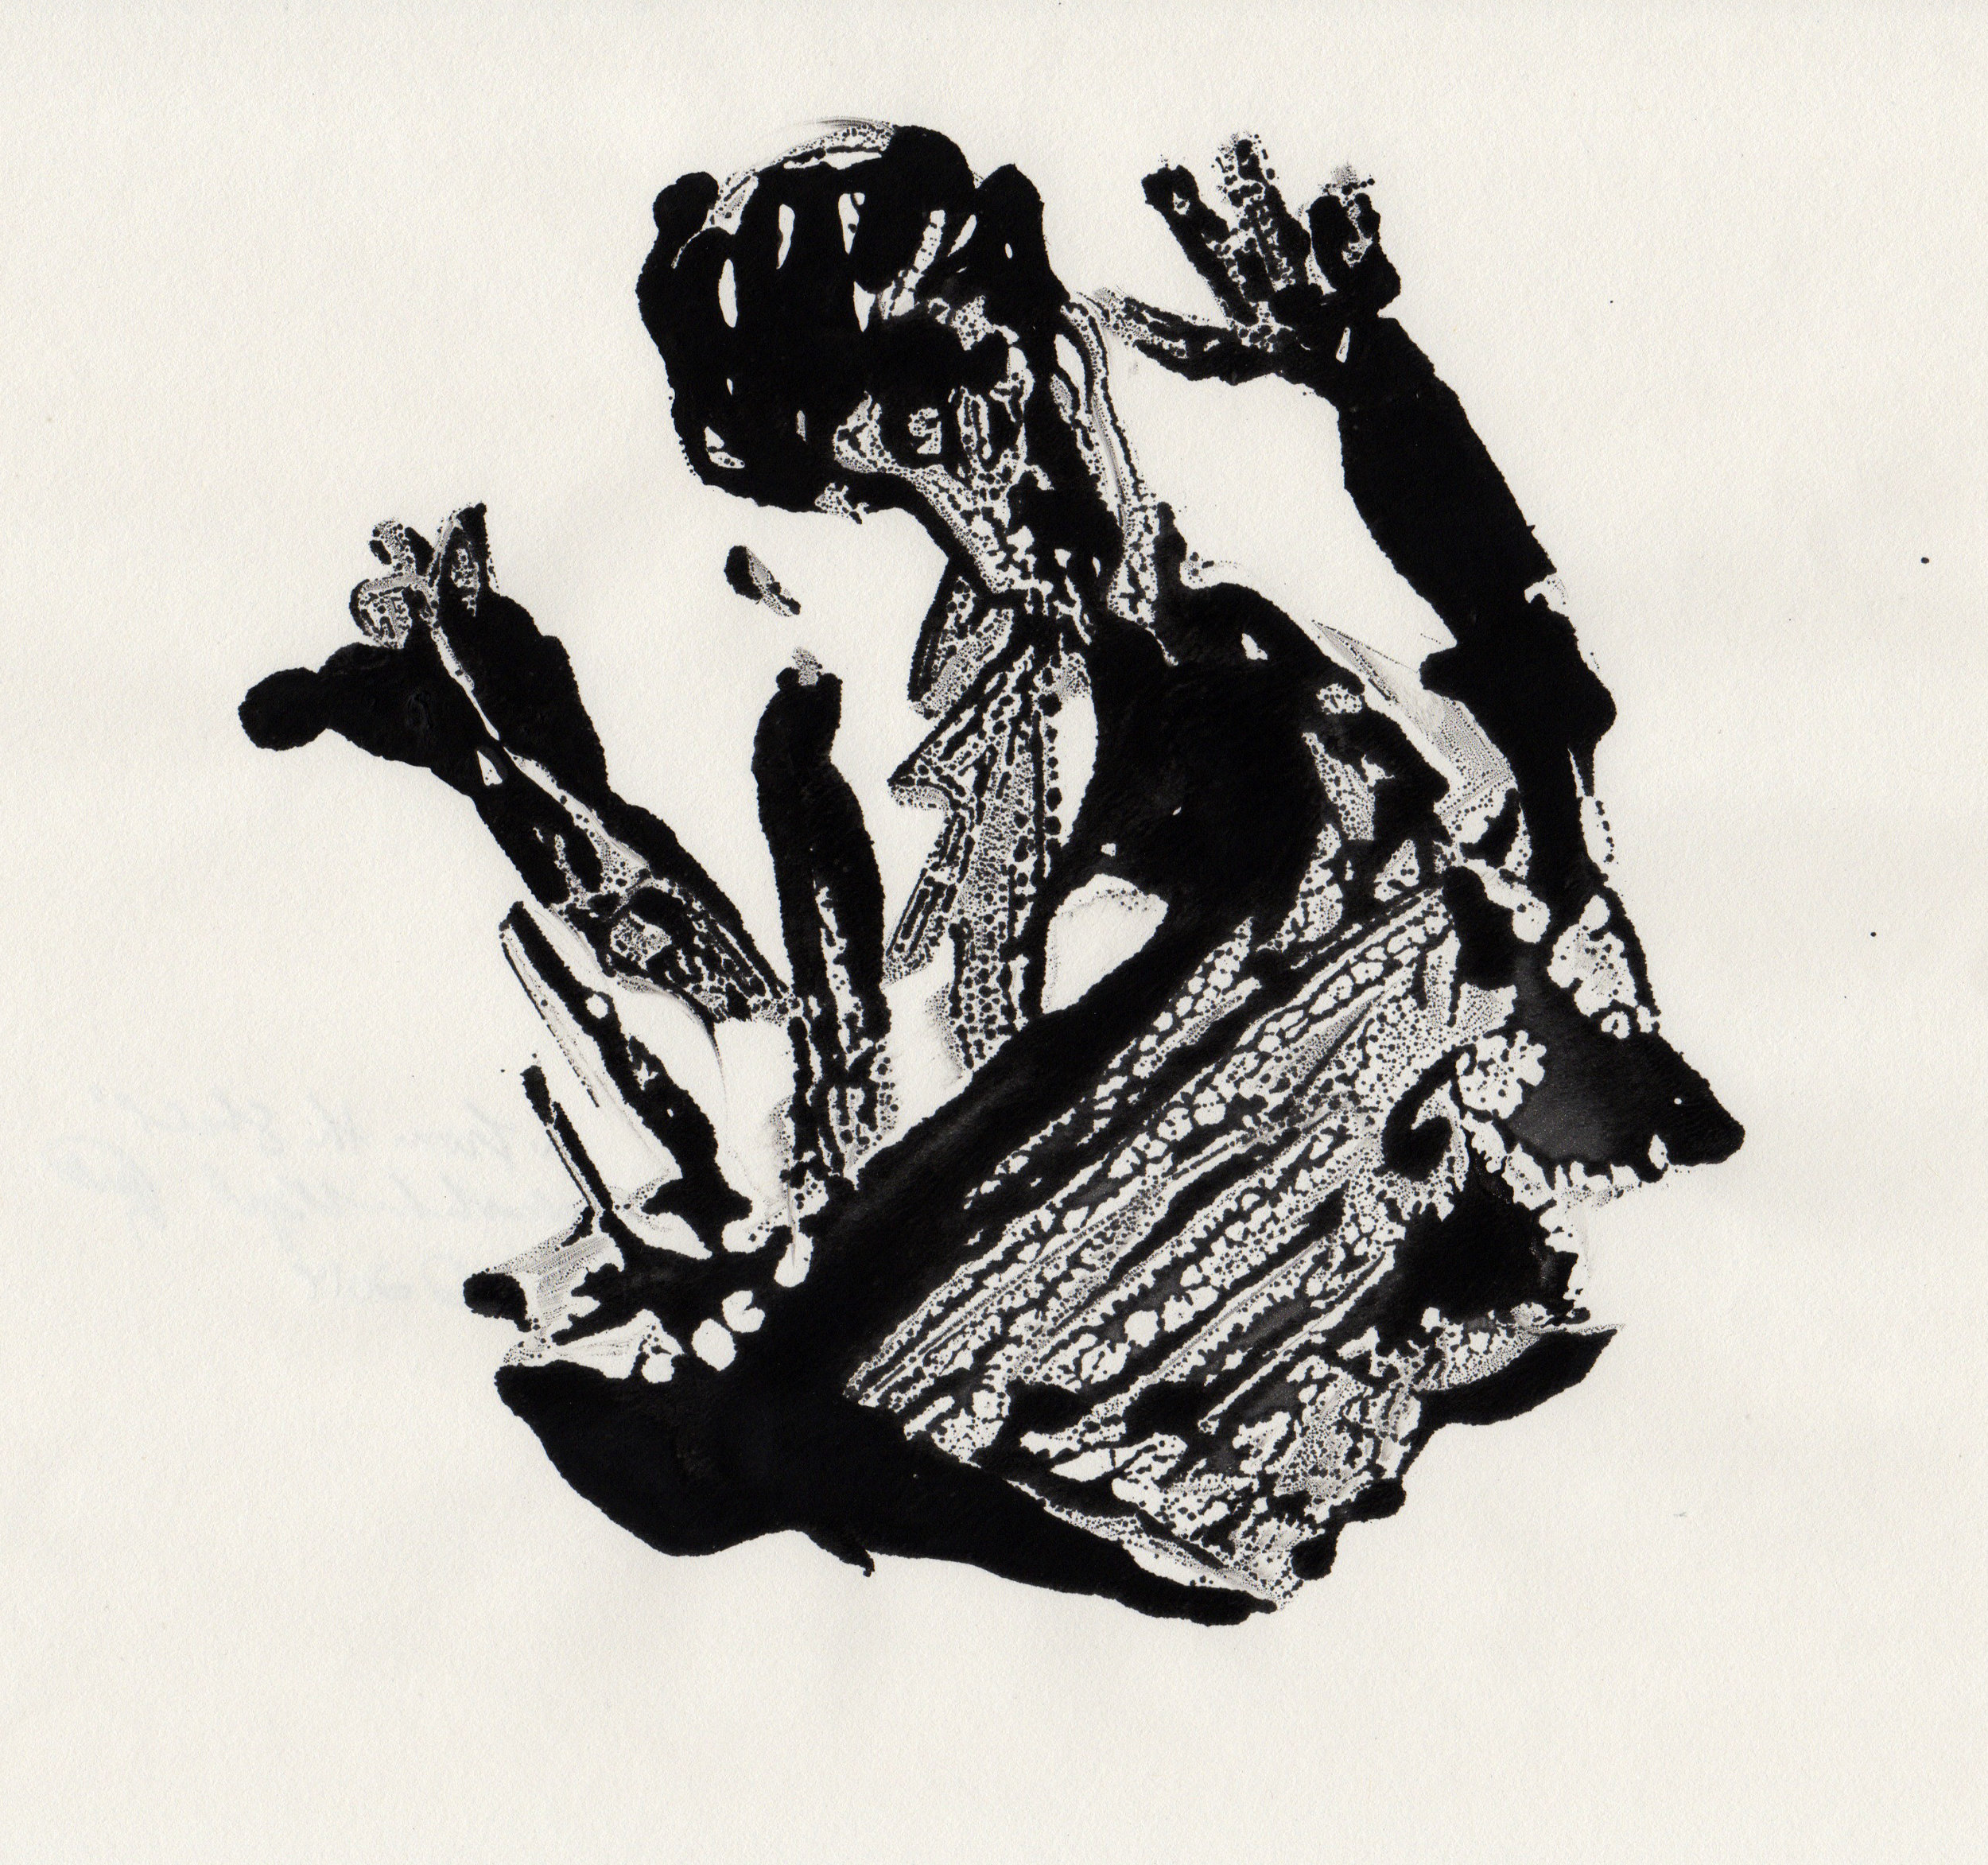 From The Shell, 2014, gelatin monotype, 10x9 inches